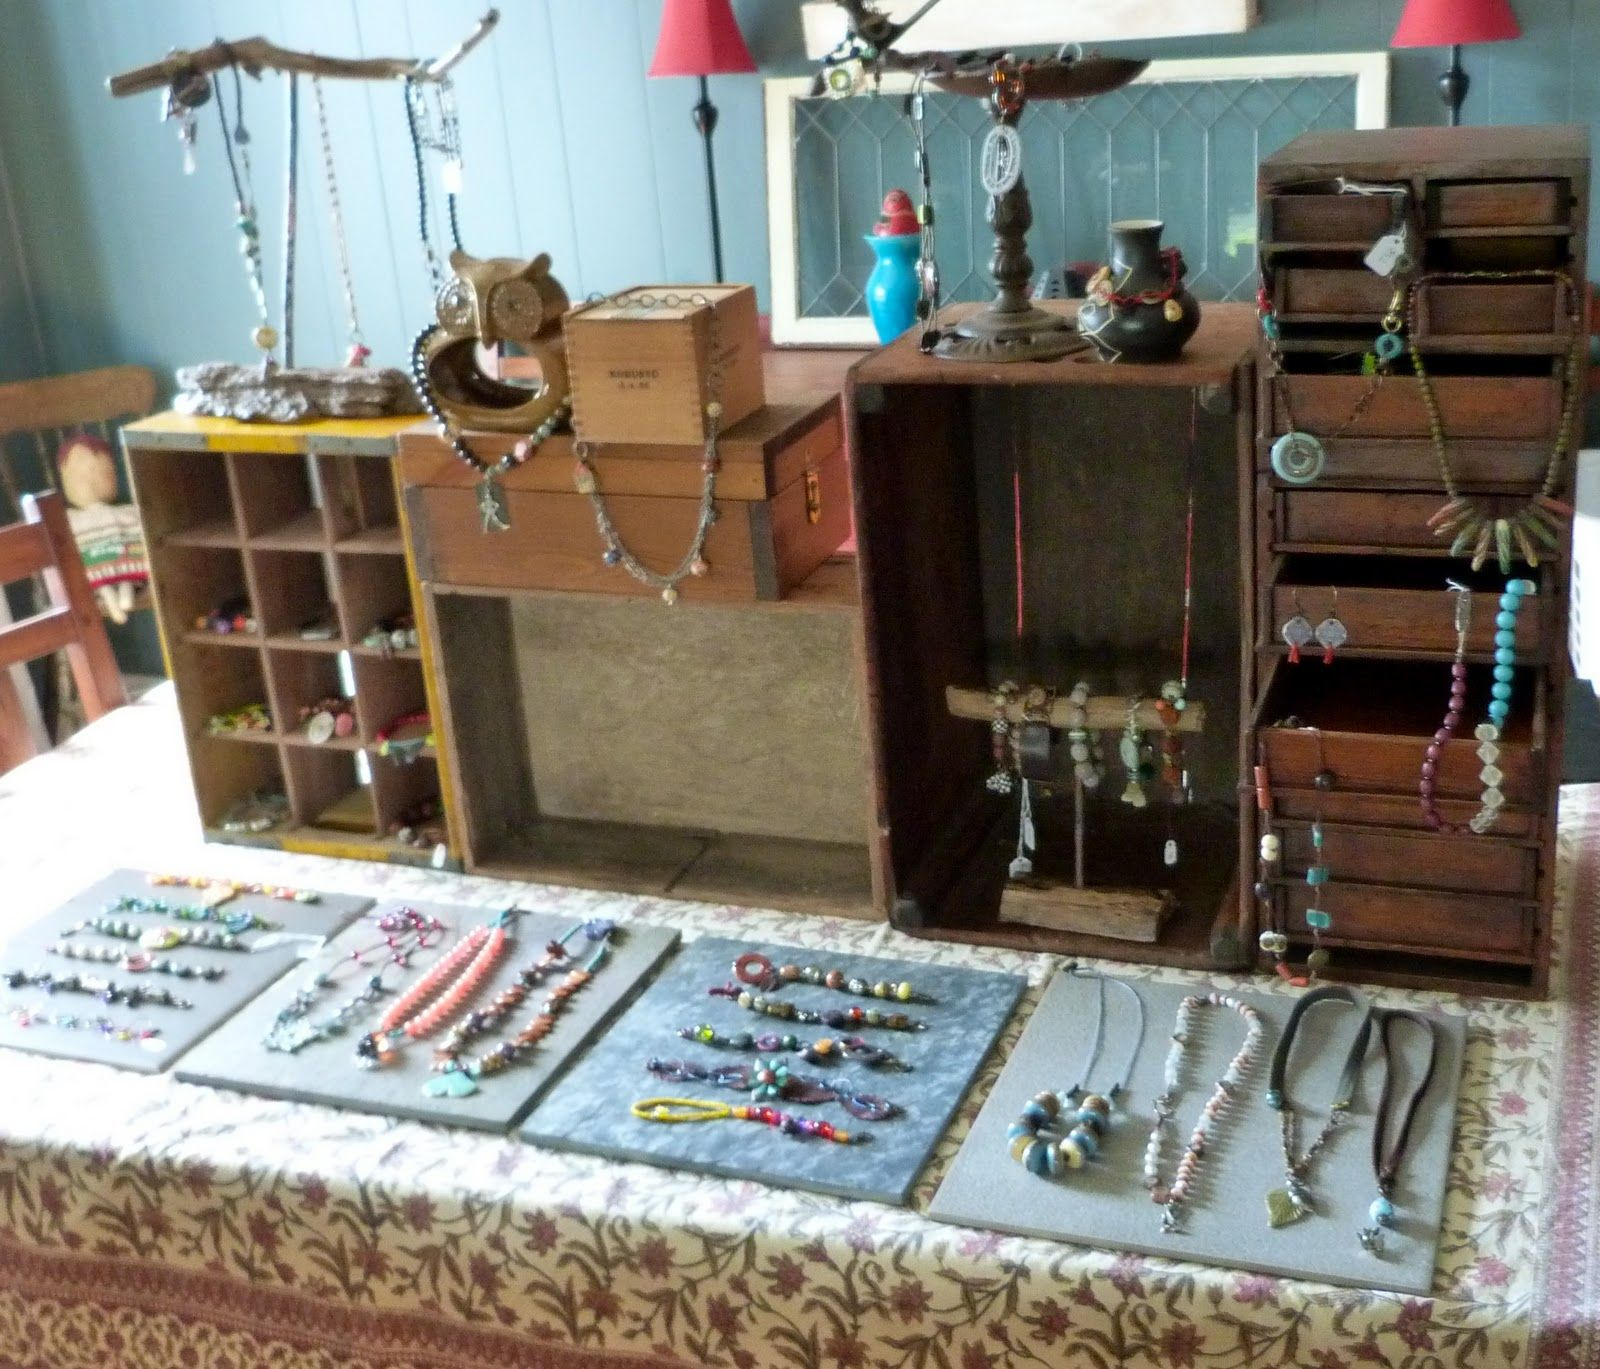 I did have a productive weekend i worked on my display for Craft show jewelry display